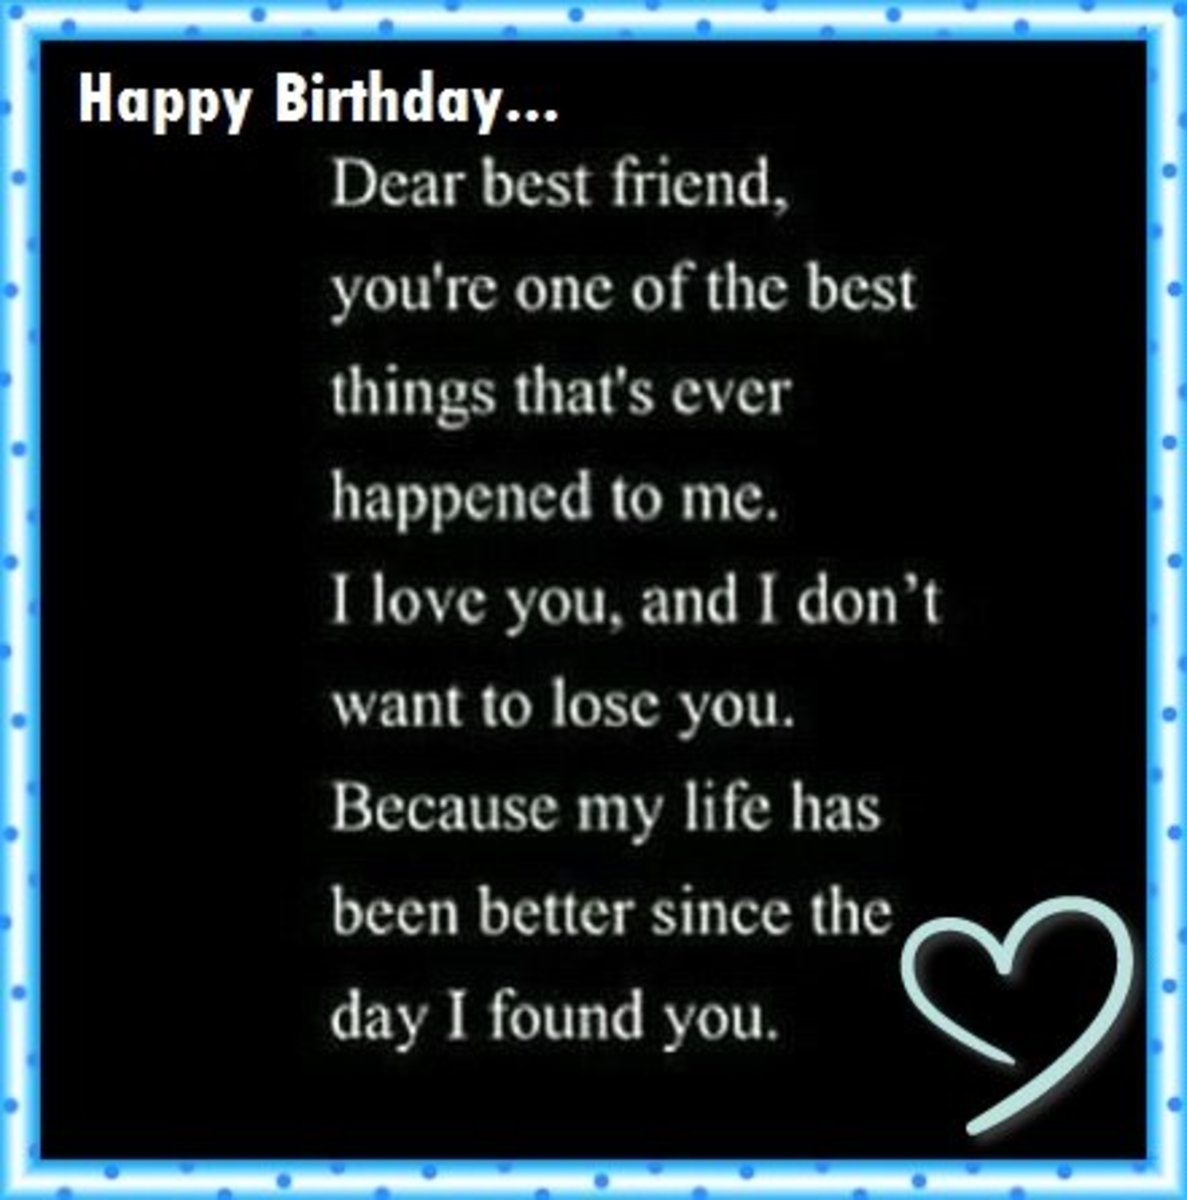 birthday letter to best friend happy birthday letter to my best friend hubpages 27255